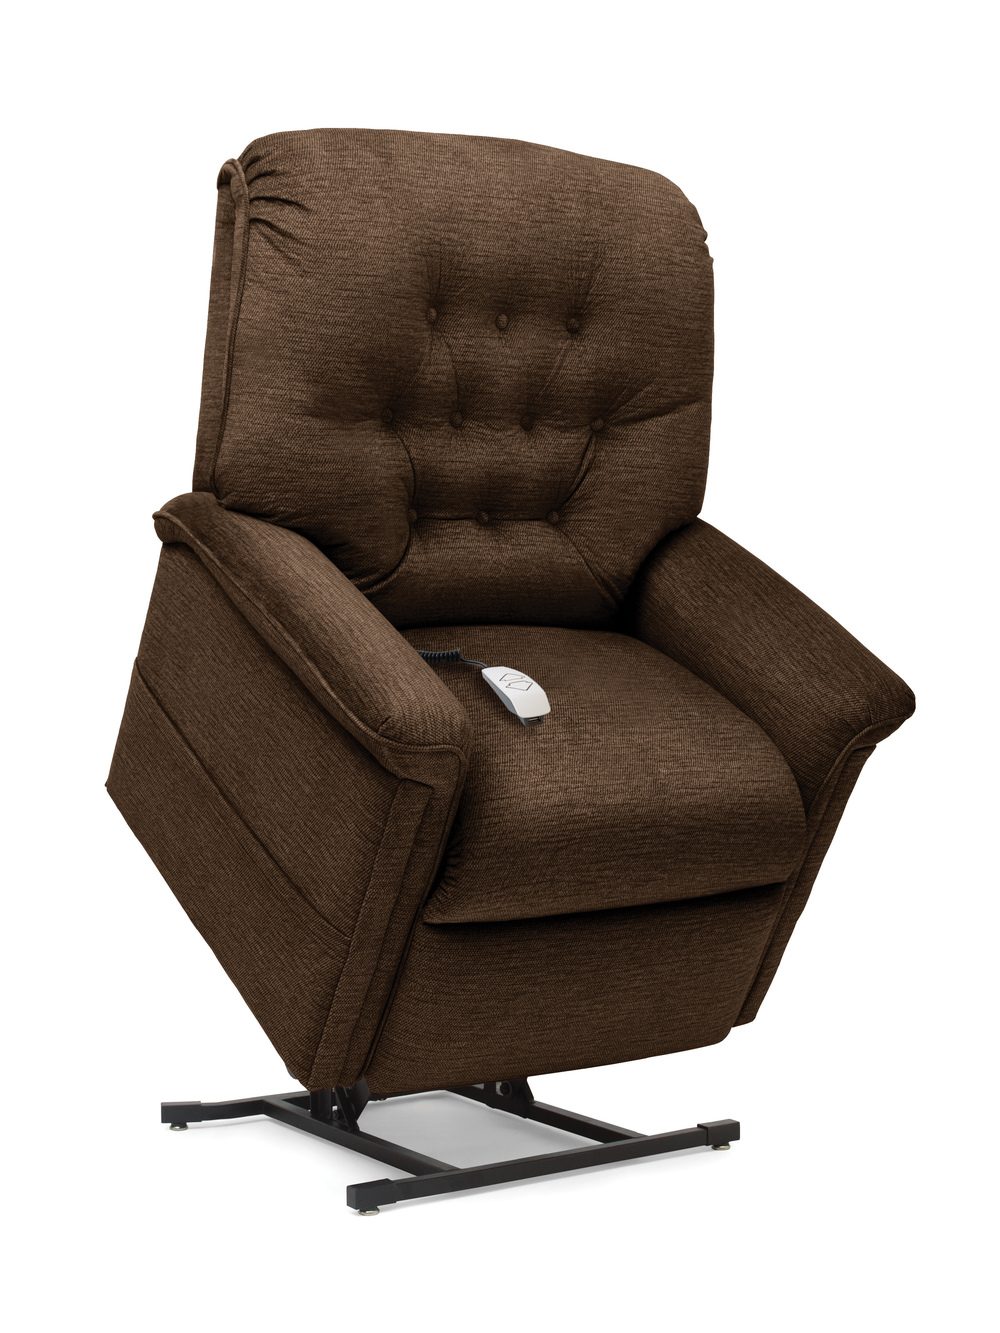 Electric Recliner Chair Wide Heavy Duty, Electric Lift Chair